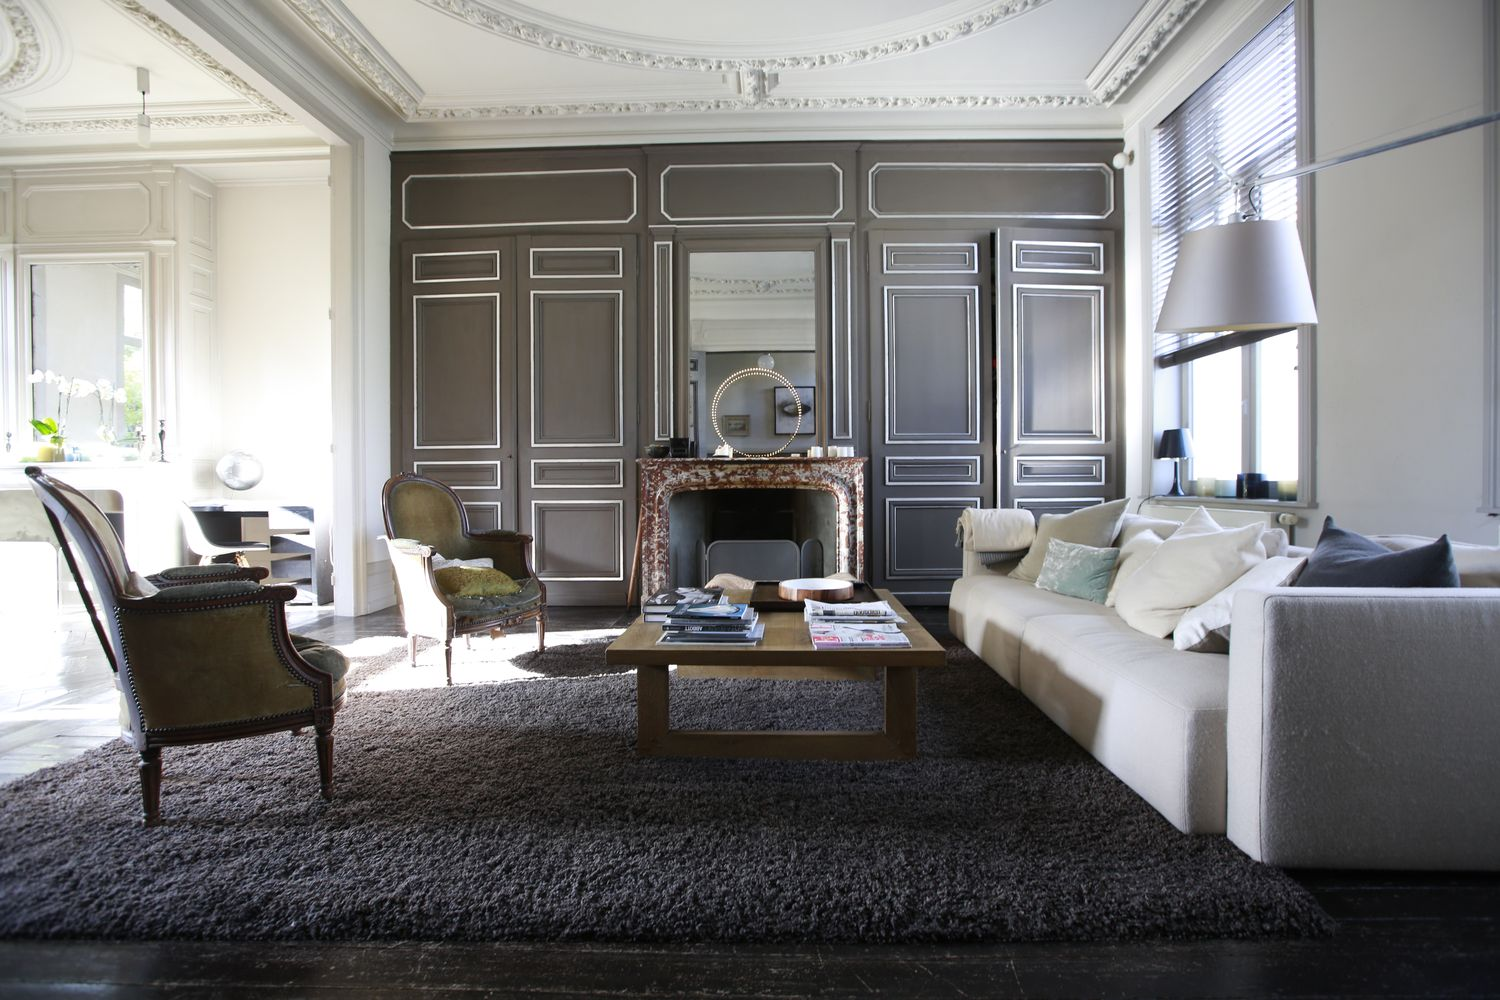 Une maison bourgeoise 19 me si cle patrick geffriaud design for Interieur 19eme siecle